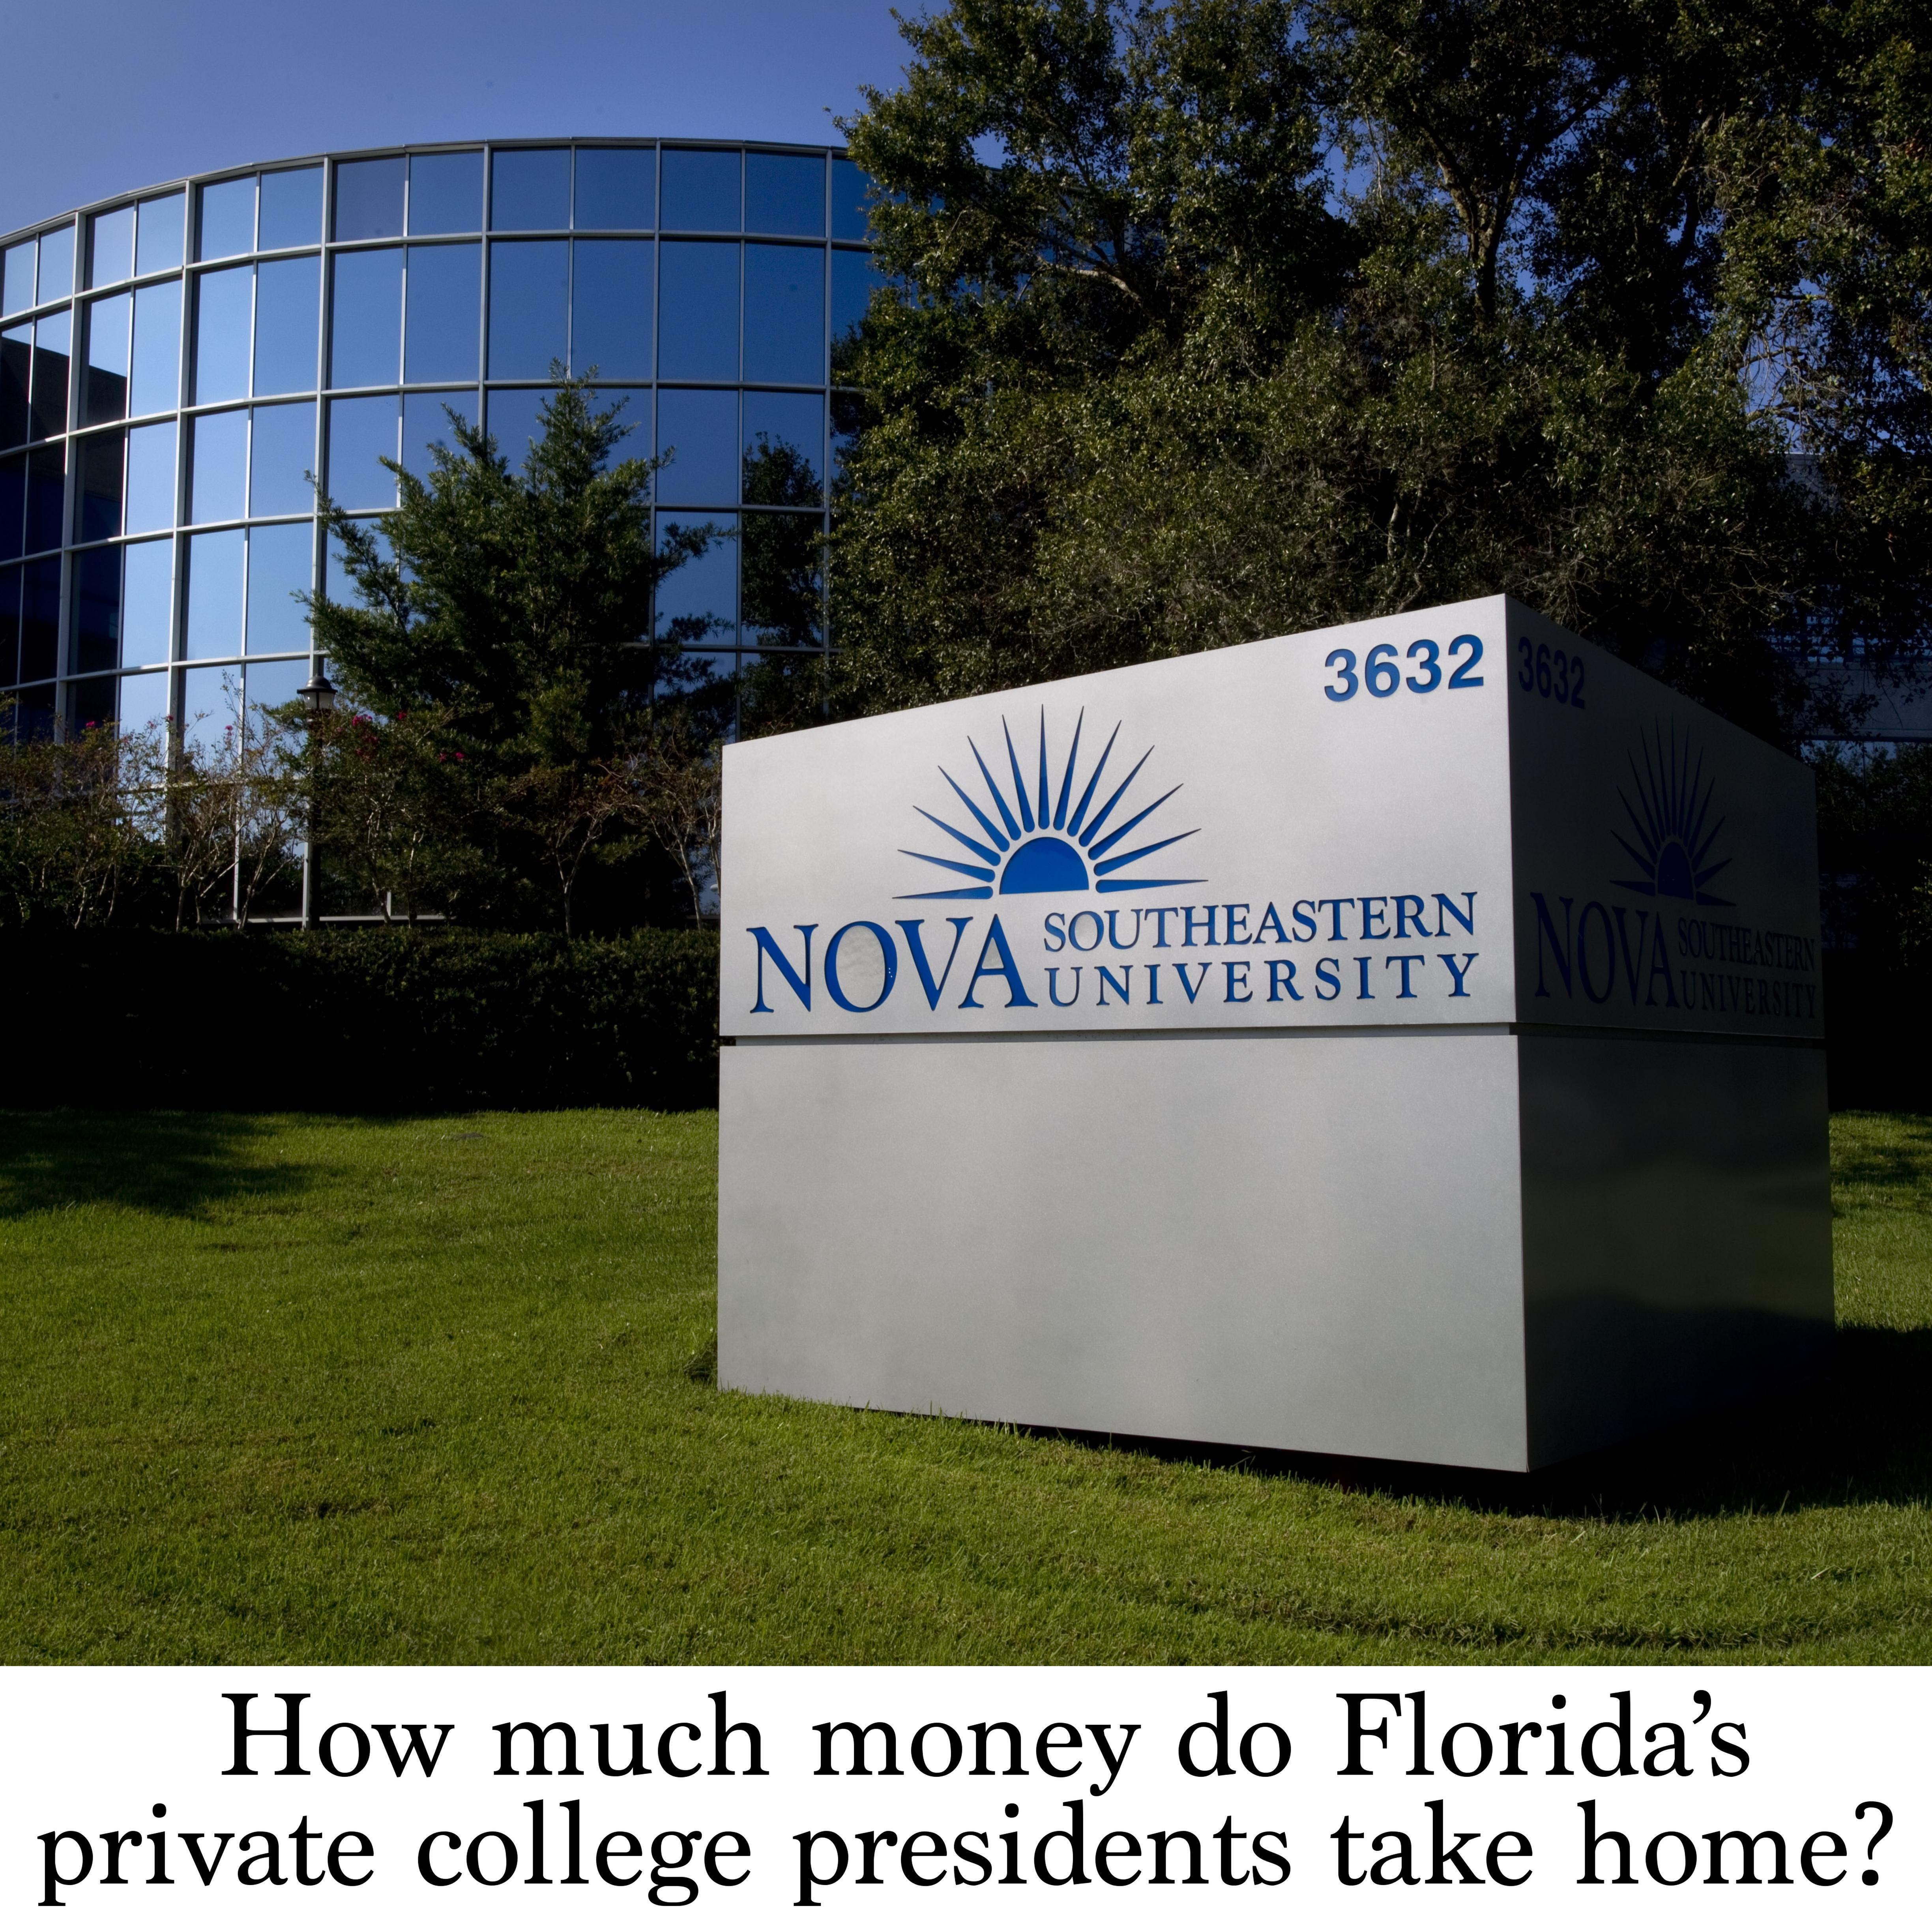 How much money do Florida's private college presidents take